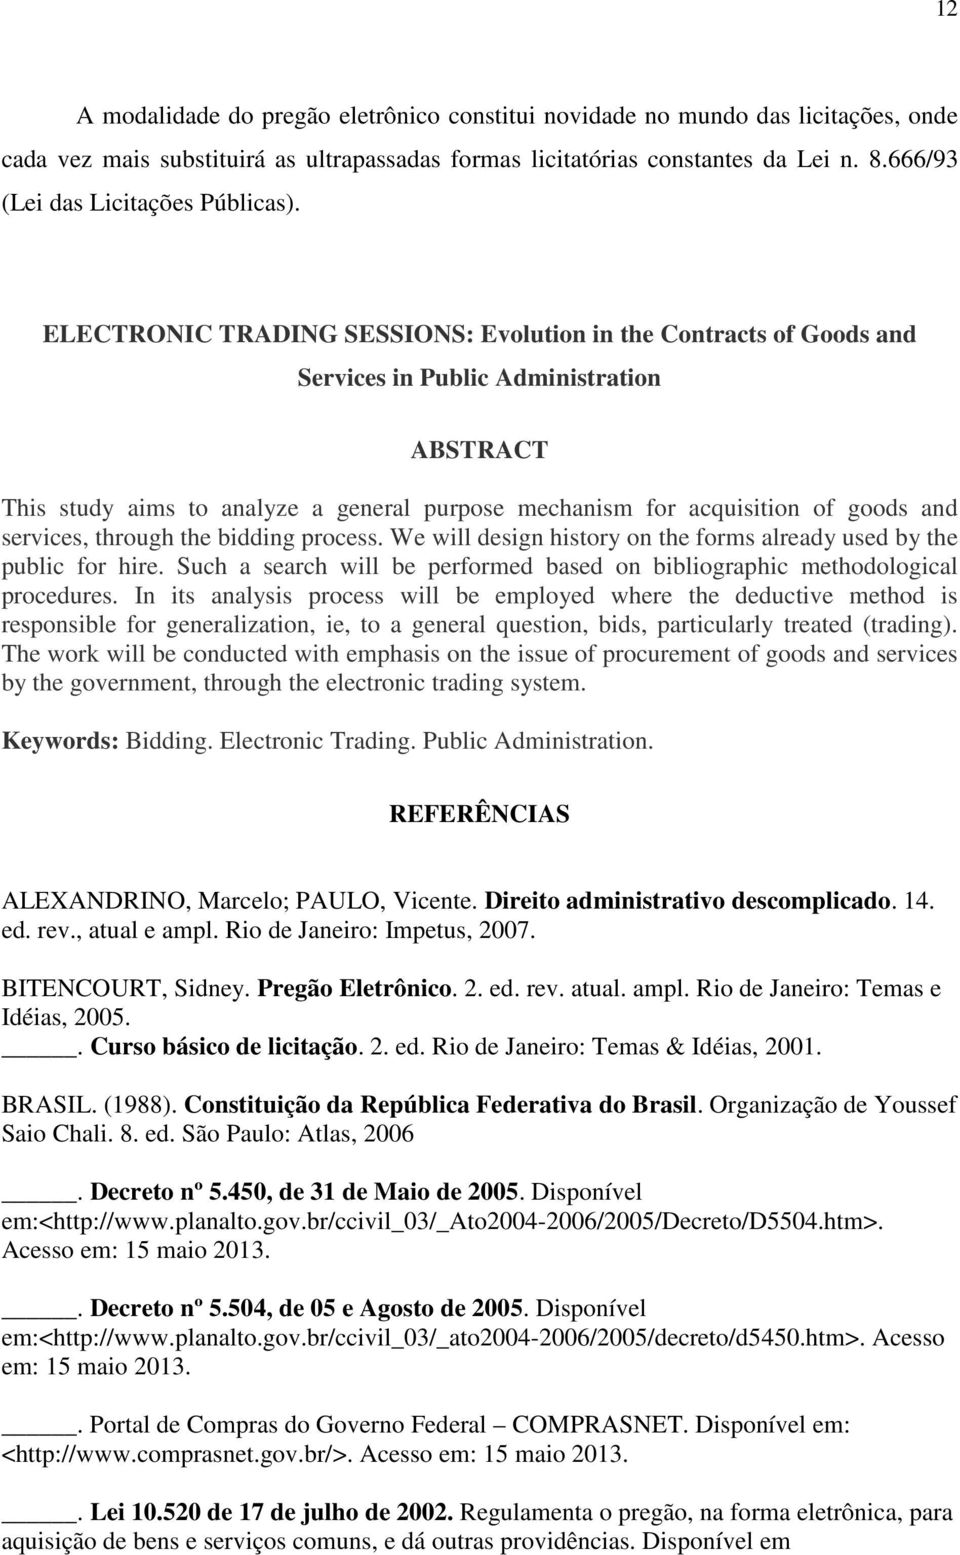 ELECTRONIC TRADING SESSIONS: Evolution in the Contracts of Goods and Services in Public Administration ABSTRACT This study aims to analyze a general purpose mechanism for acquisition of goods and